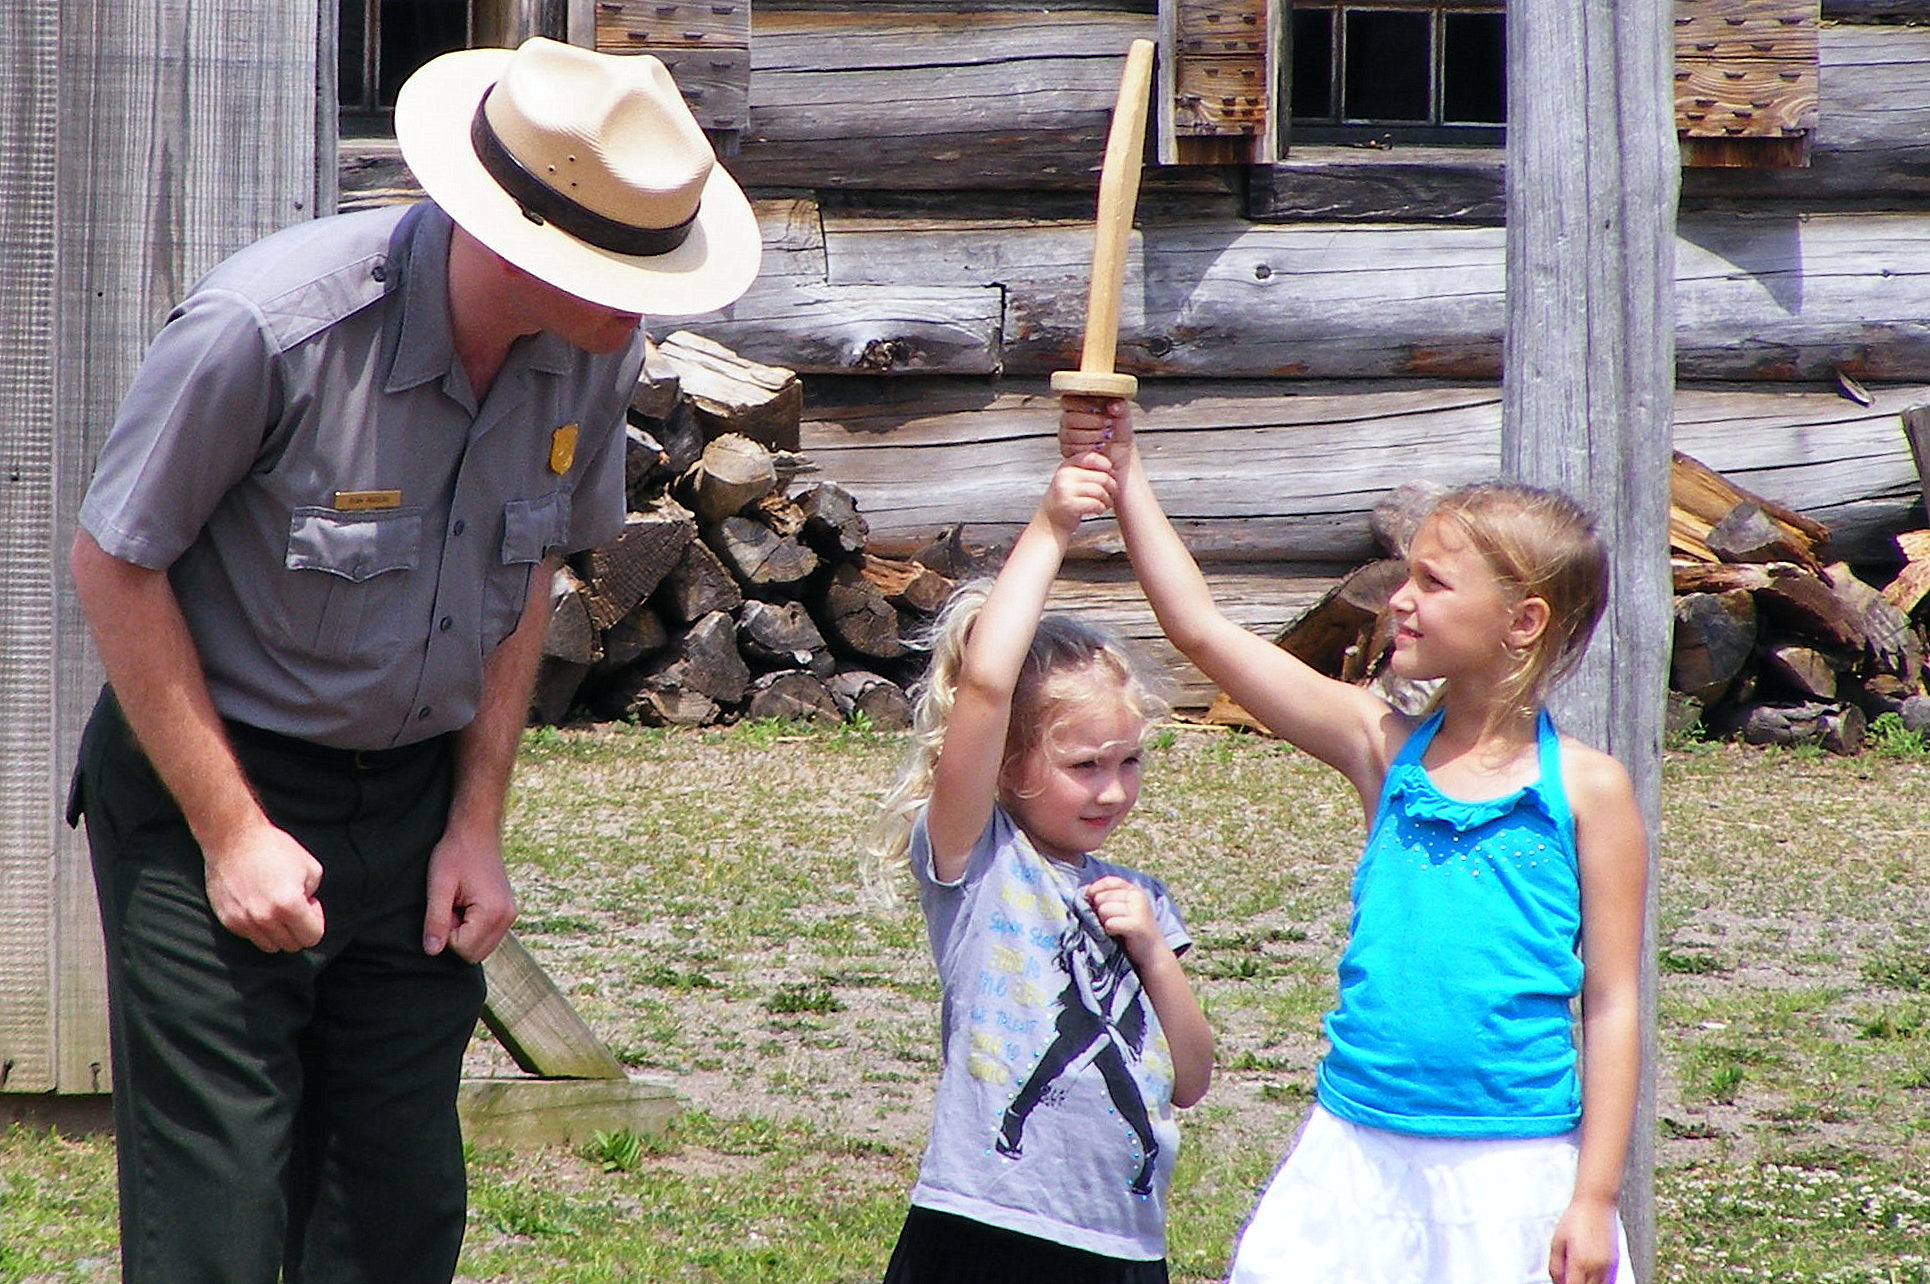 A little girl and her sister hold a wooden sword next to a park ranger.